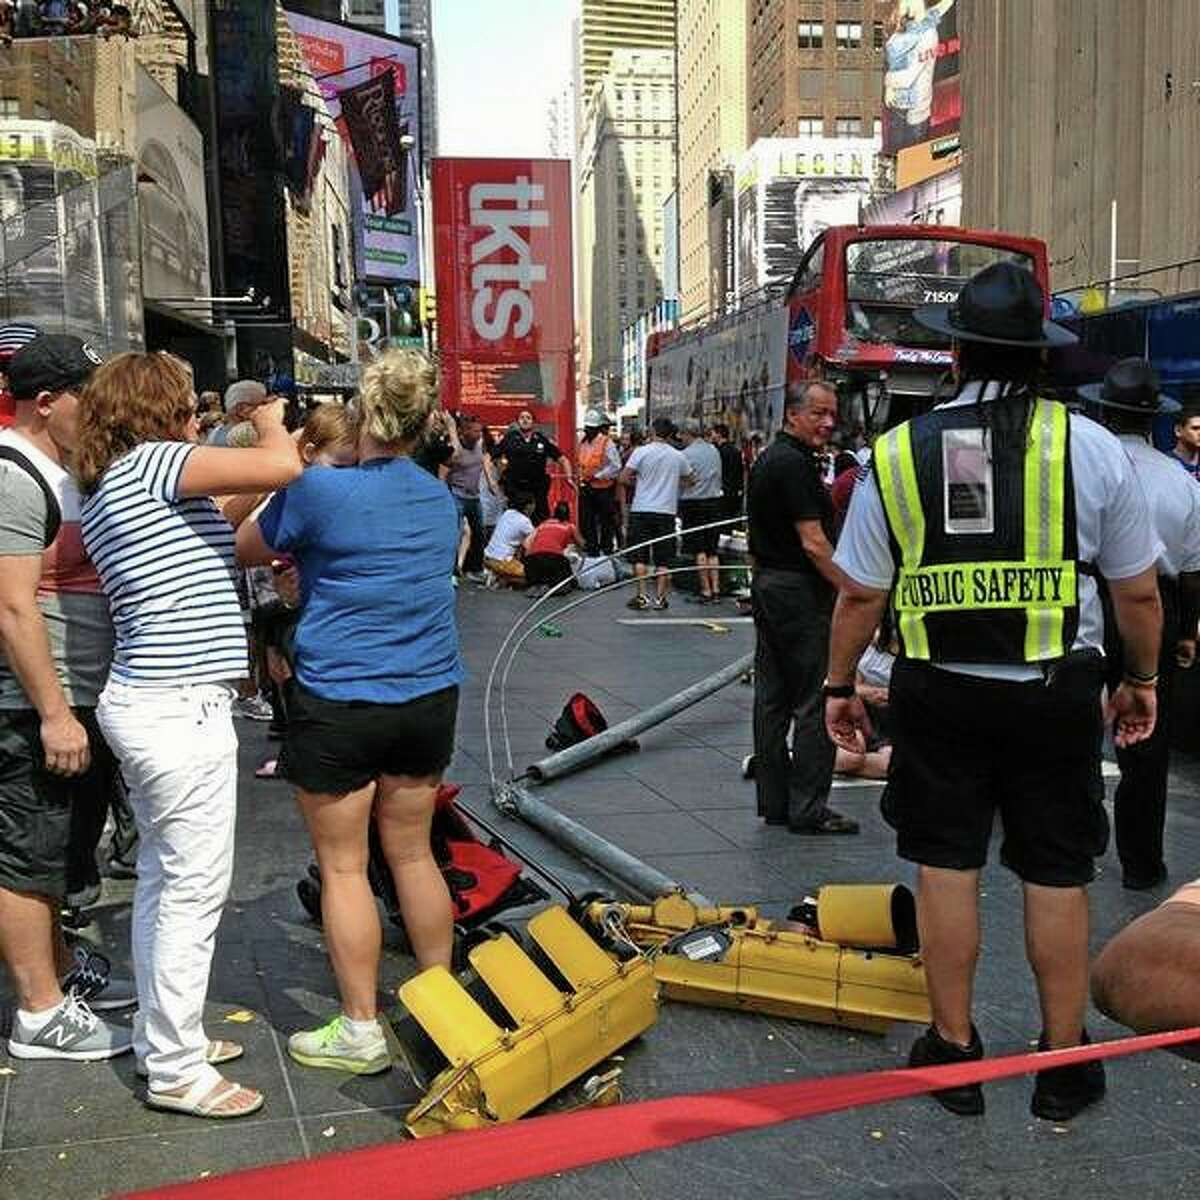 In this photo provided by Josh Price, pedestrians gather at the scene of a bus crash as first responders attend to the victims, Tuesday, Aug. 5, 2014, in New York Cityís Times Square. The Theater District collision of two double-decker tour buses injured more than a dozen people. (AP Photo/Josh Price)